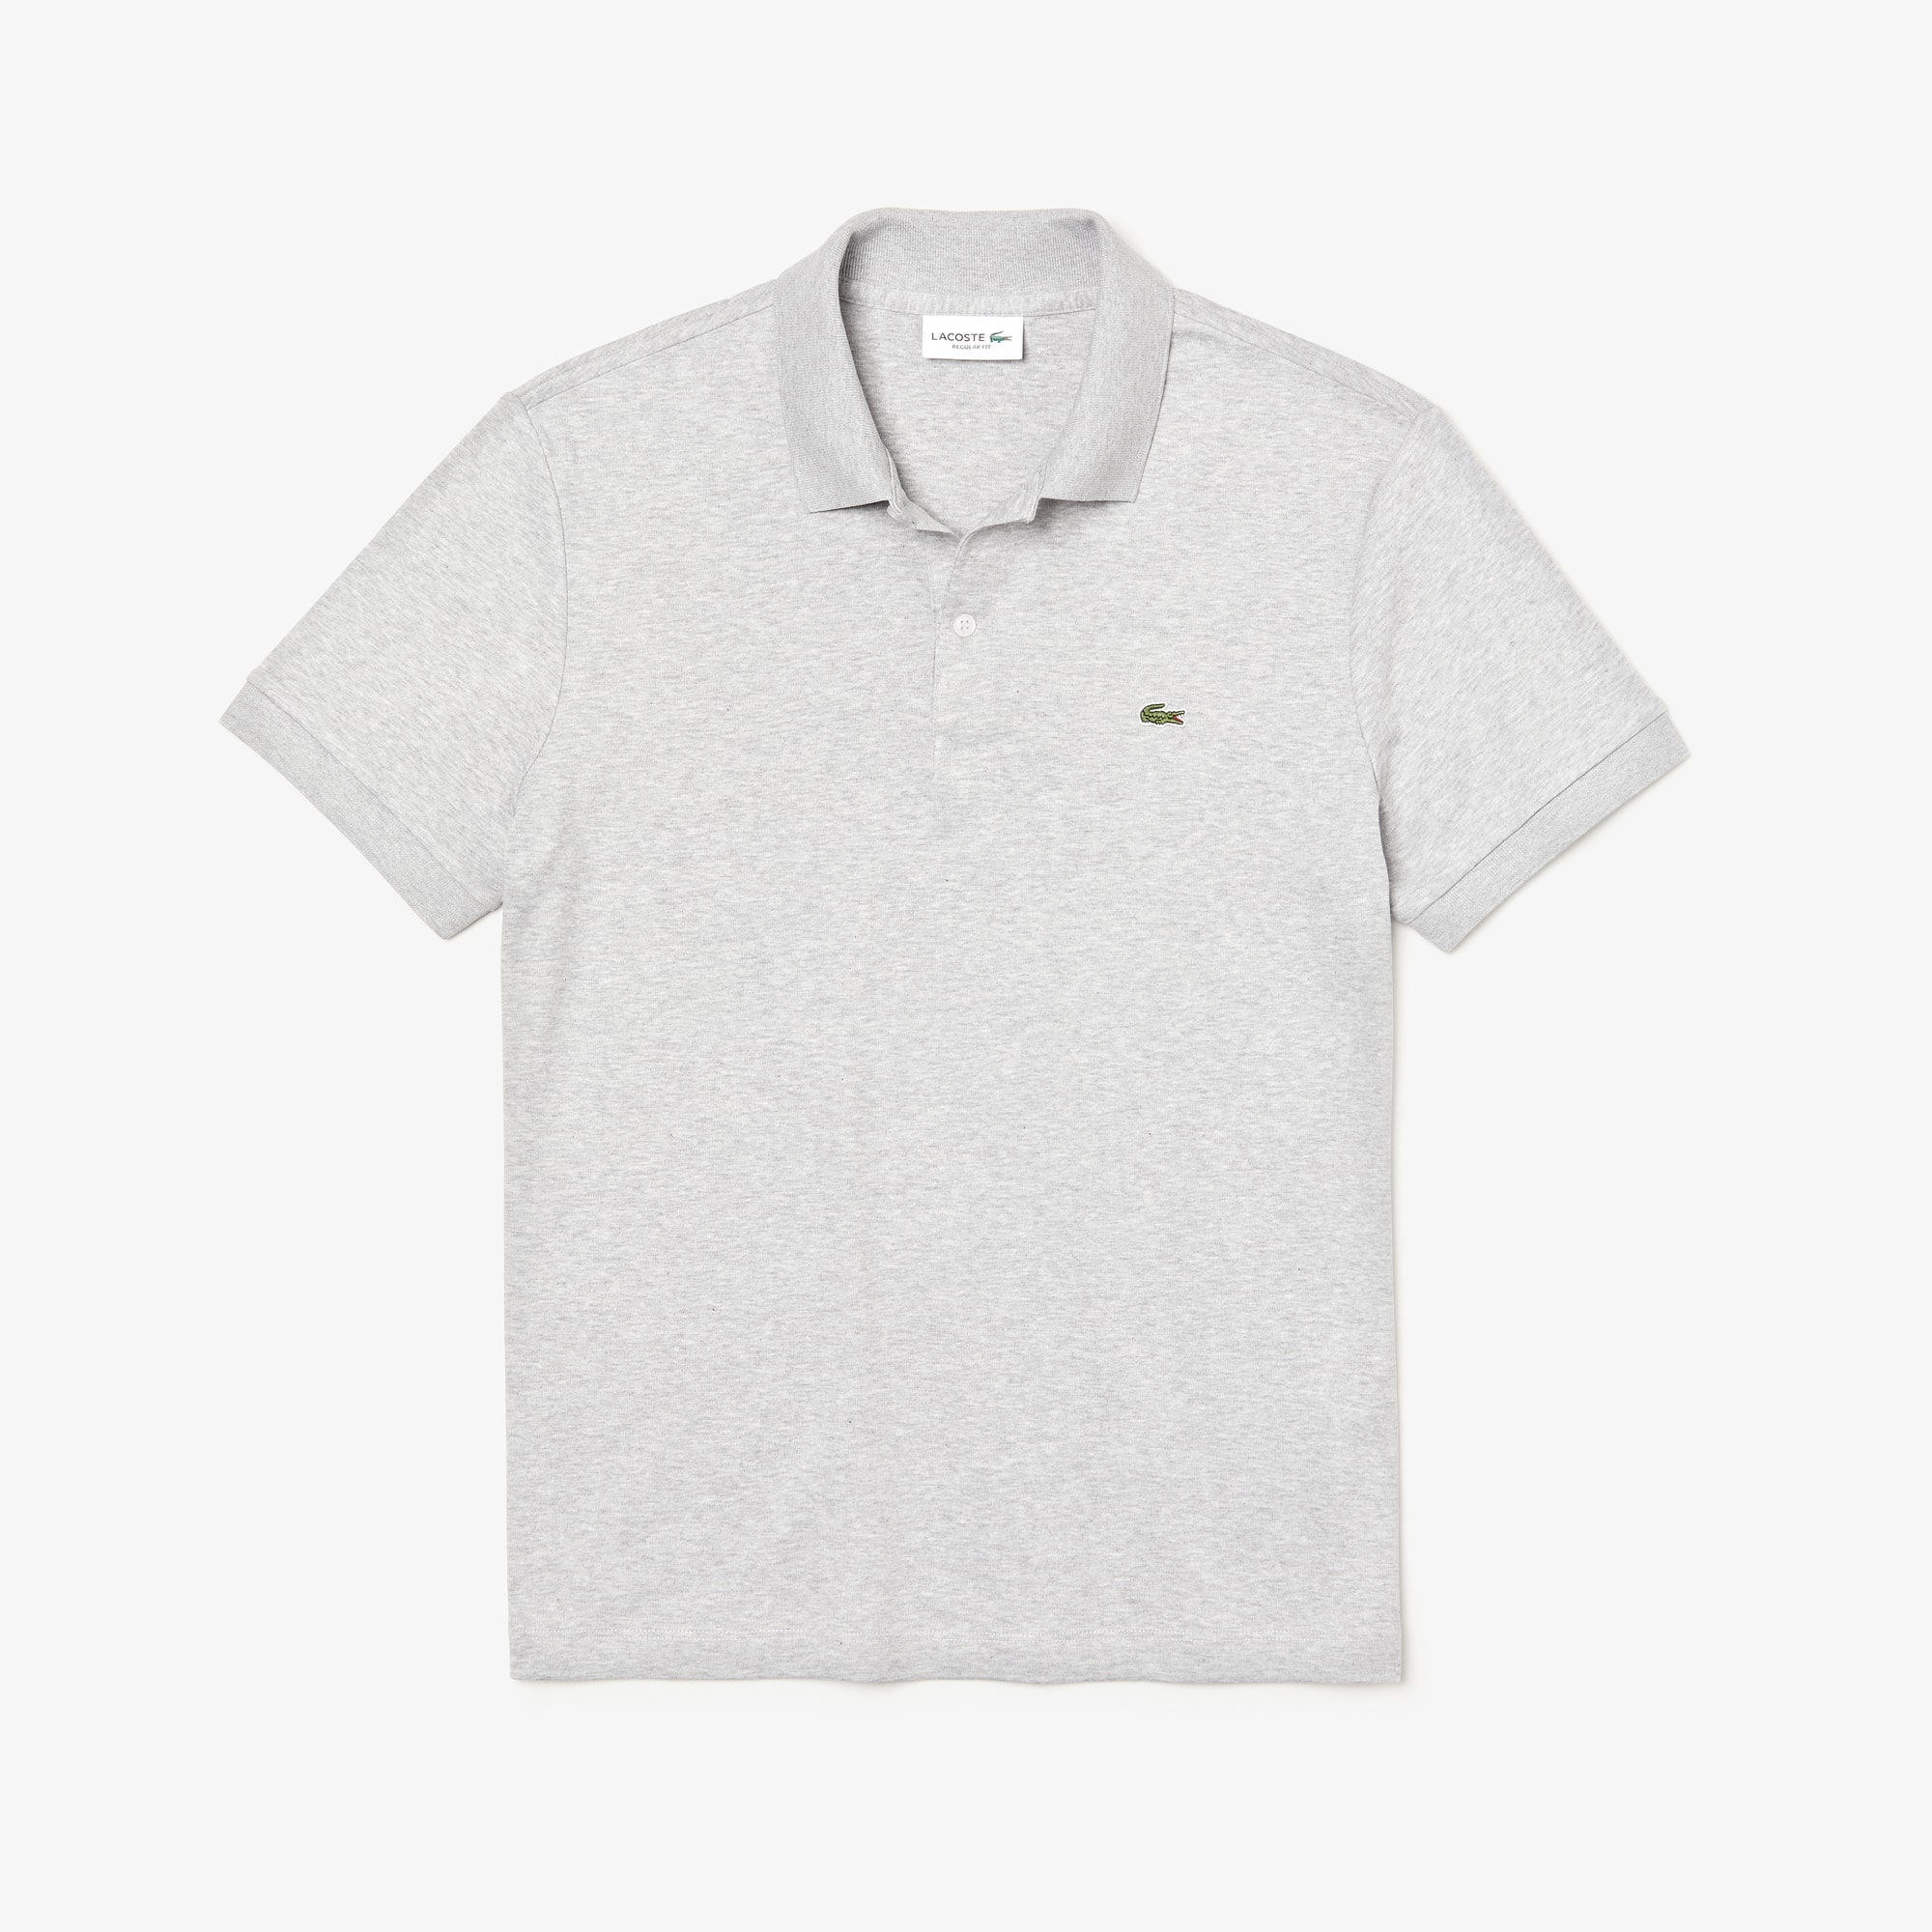 Men's Regular Fit Lightweight Cotton Polo